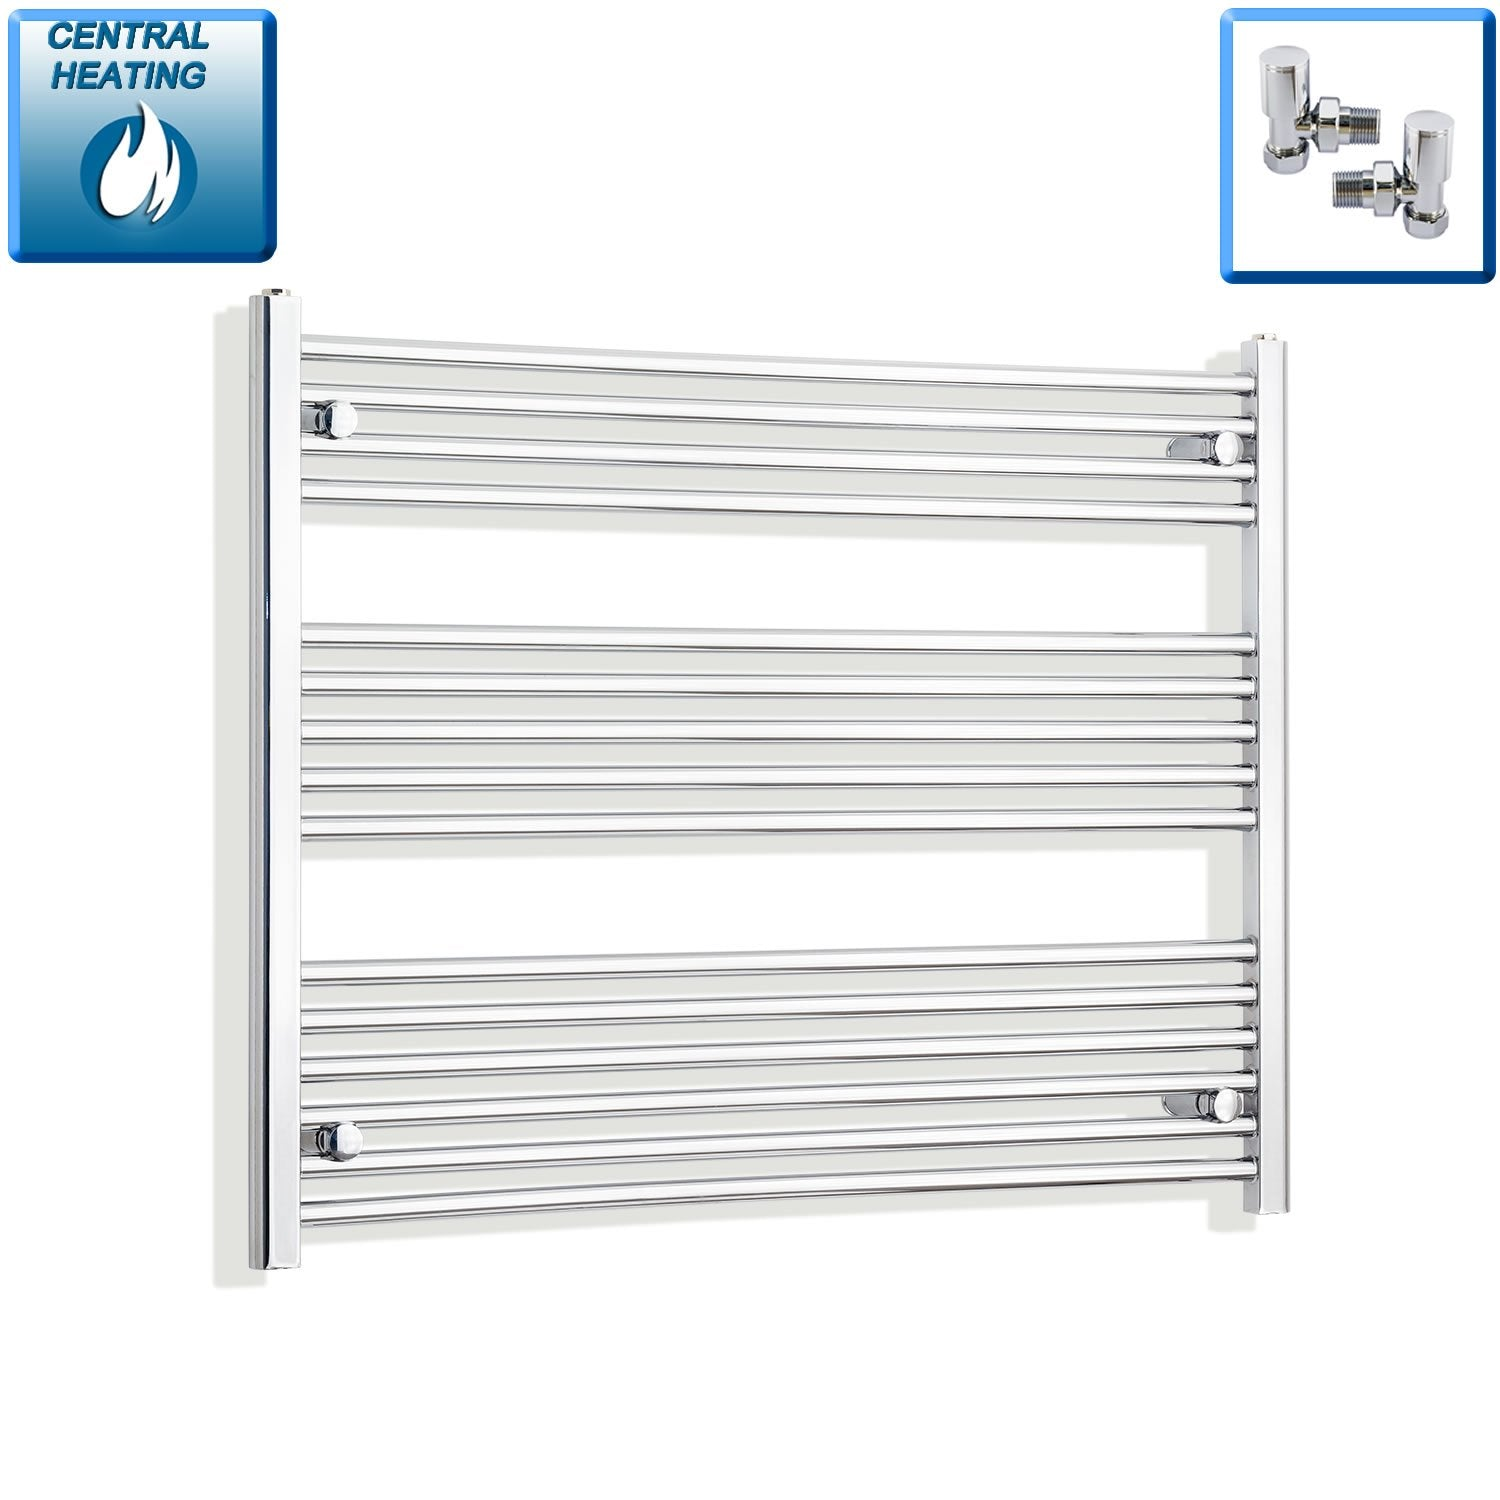 950mm Wide 800mm High Flat Chrome Heated Towel Rail Radiator HTR,With Angled Valve